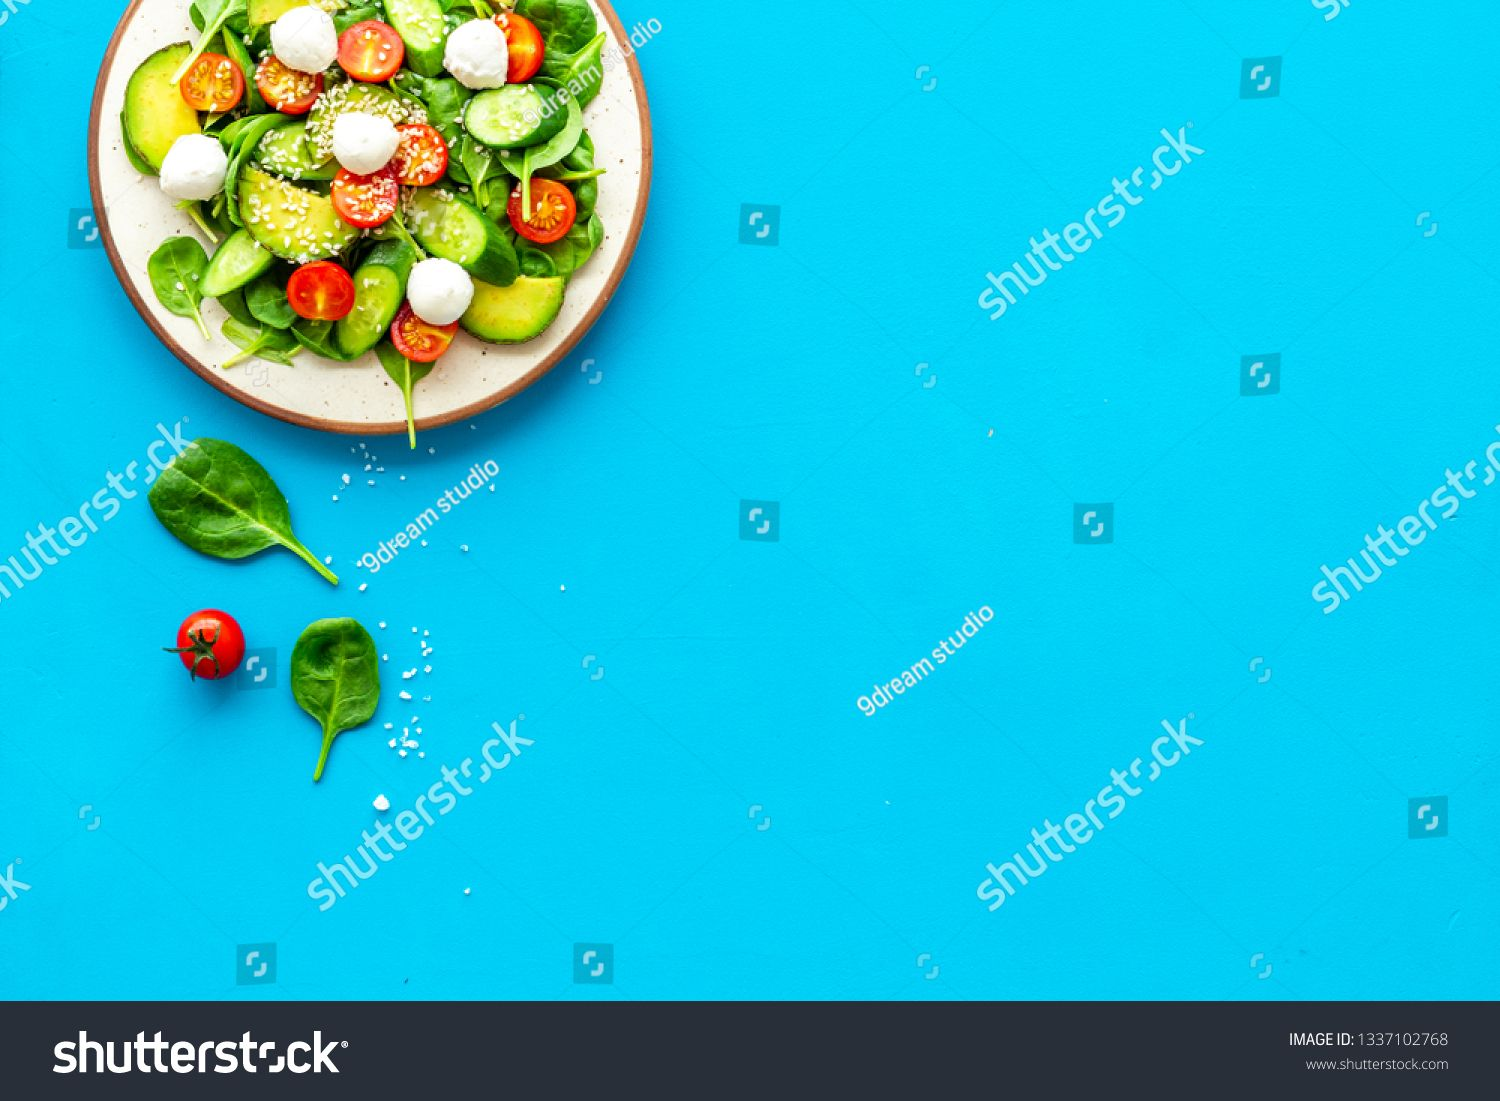 Healthy Lunch Fresh Vegetable Salad On Blue Background Top View Copy Space Ad Ad Vegetable Salad Fresh Healthy Fresh Vegetables Healthy Lunch Healthy